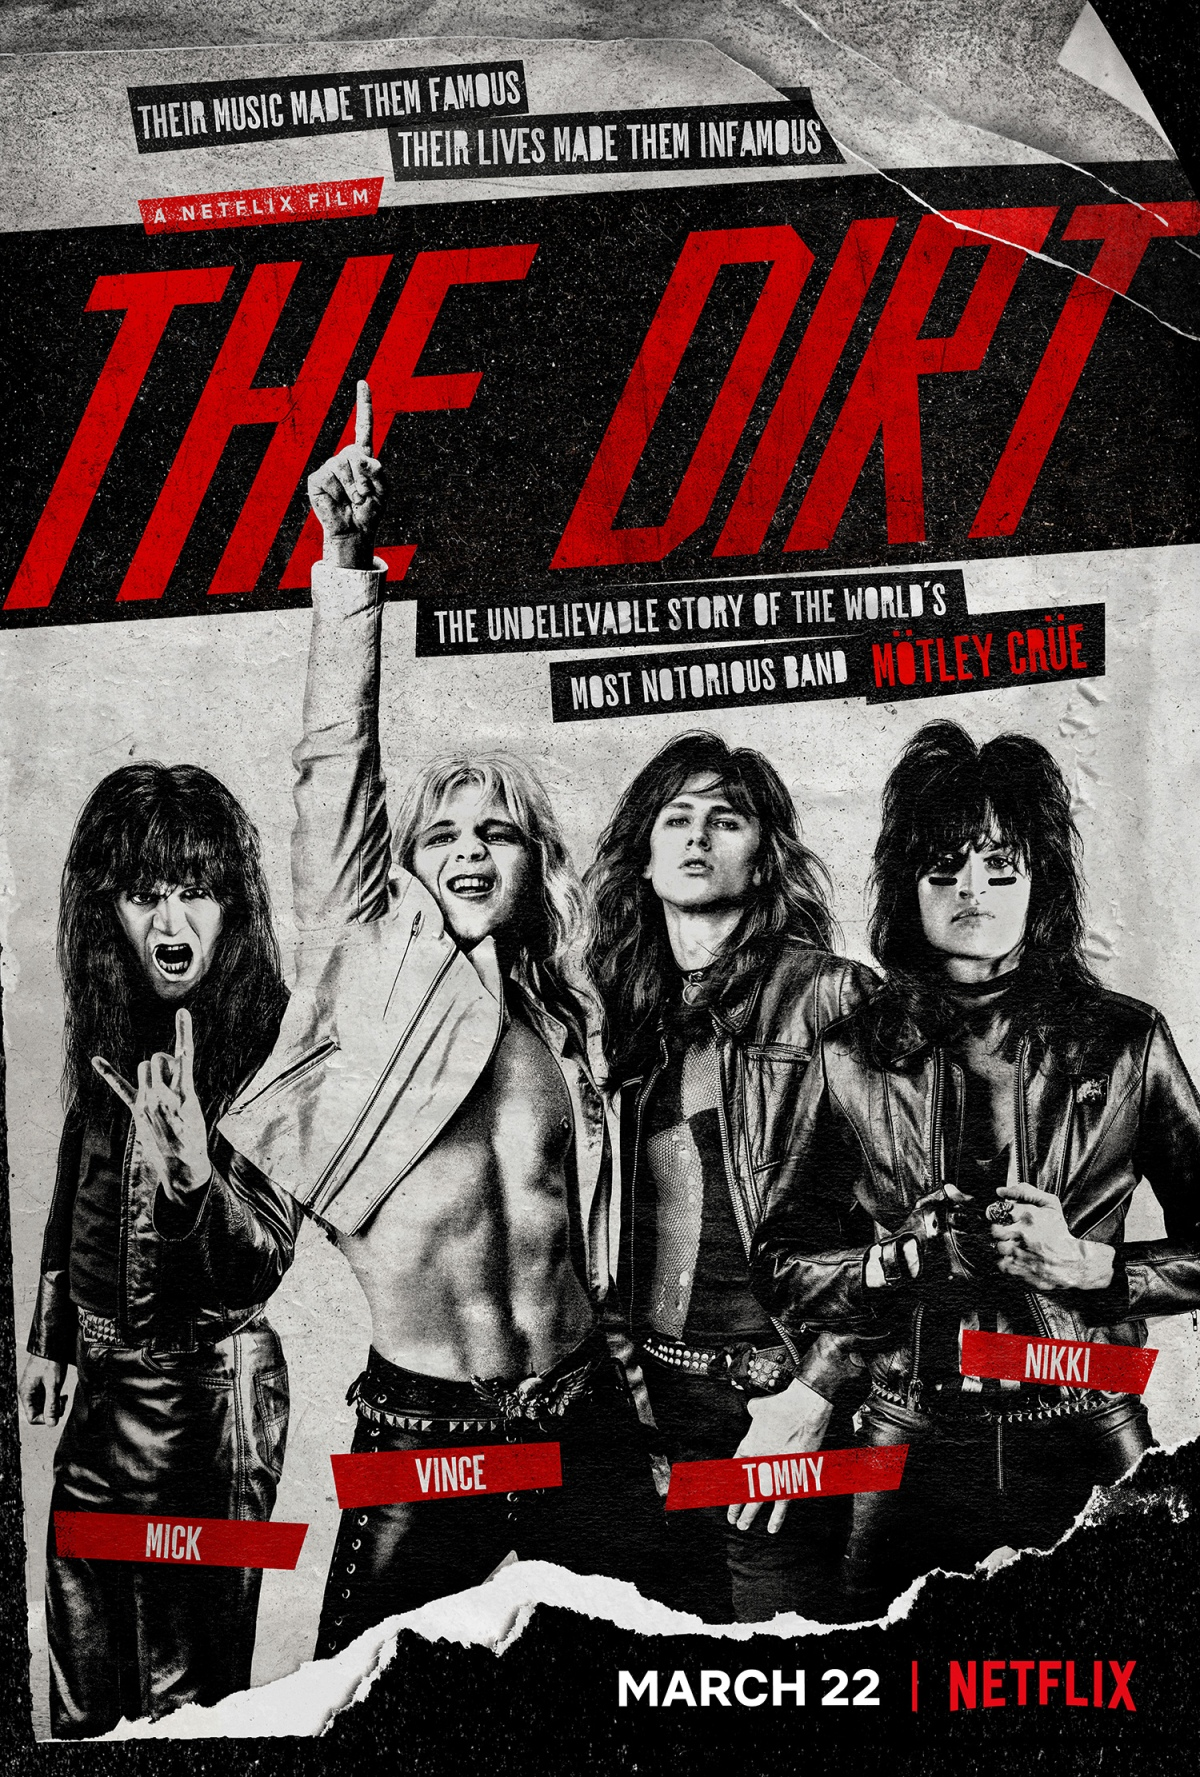 Tales of Rock – Digging in The Dirt: An inside look at the raucous Mötley Crüebiopic